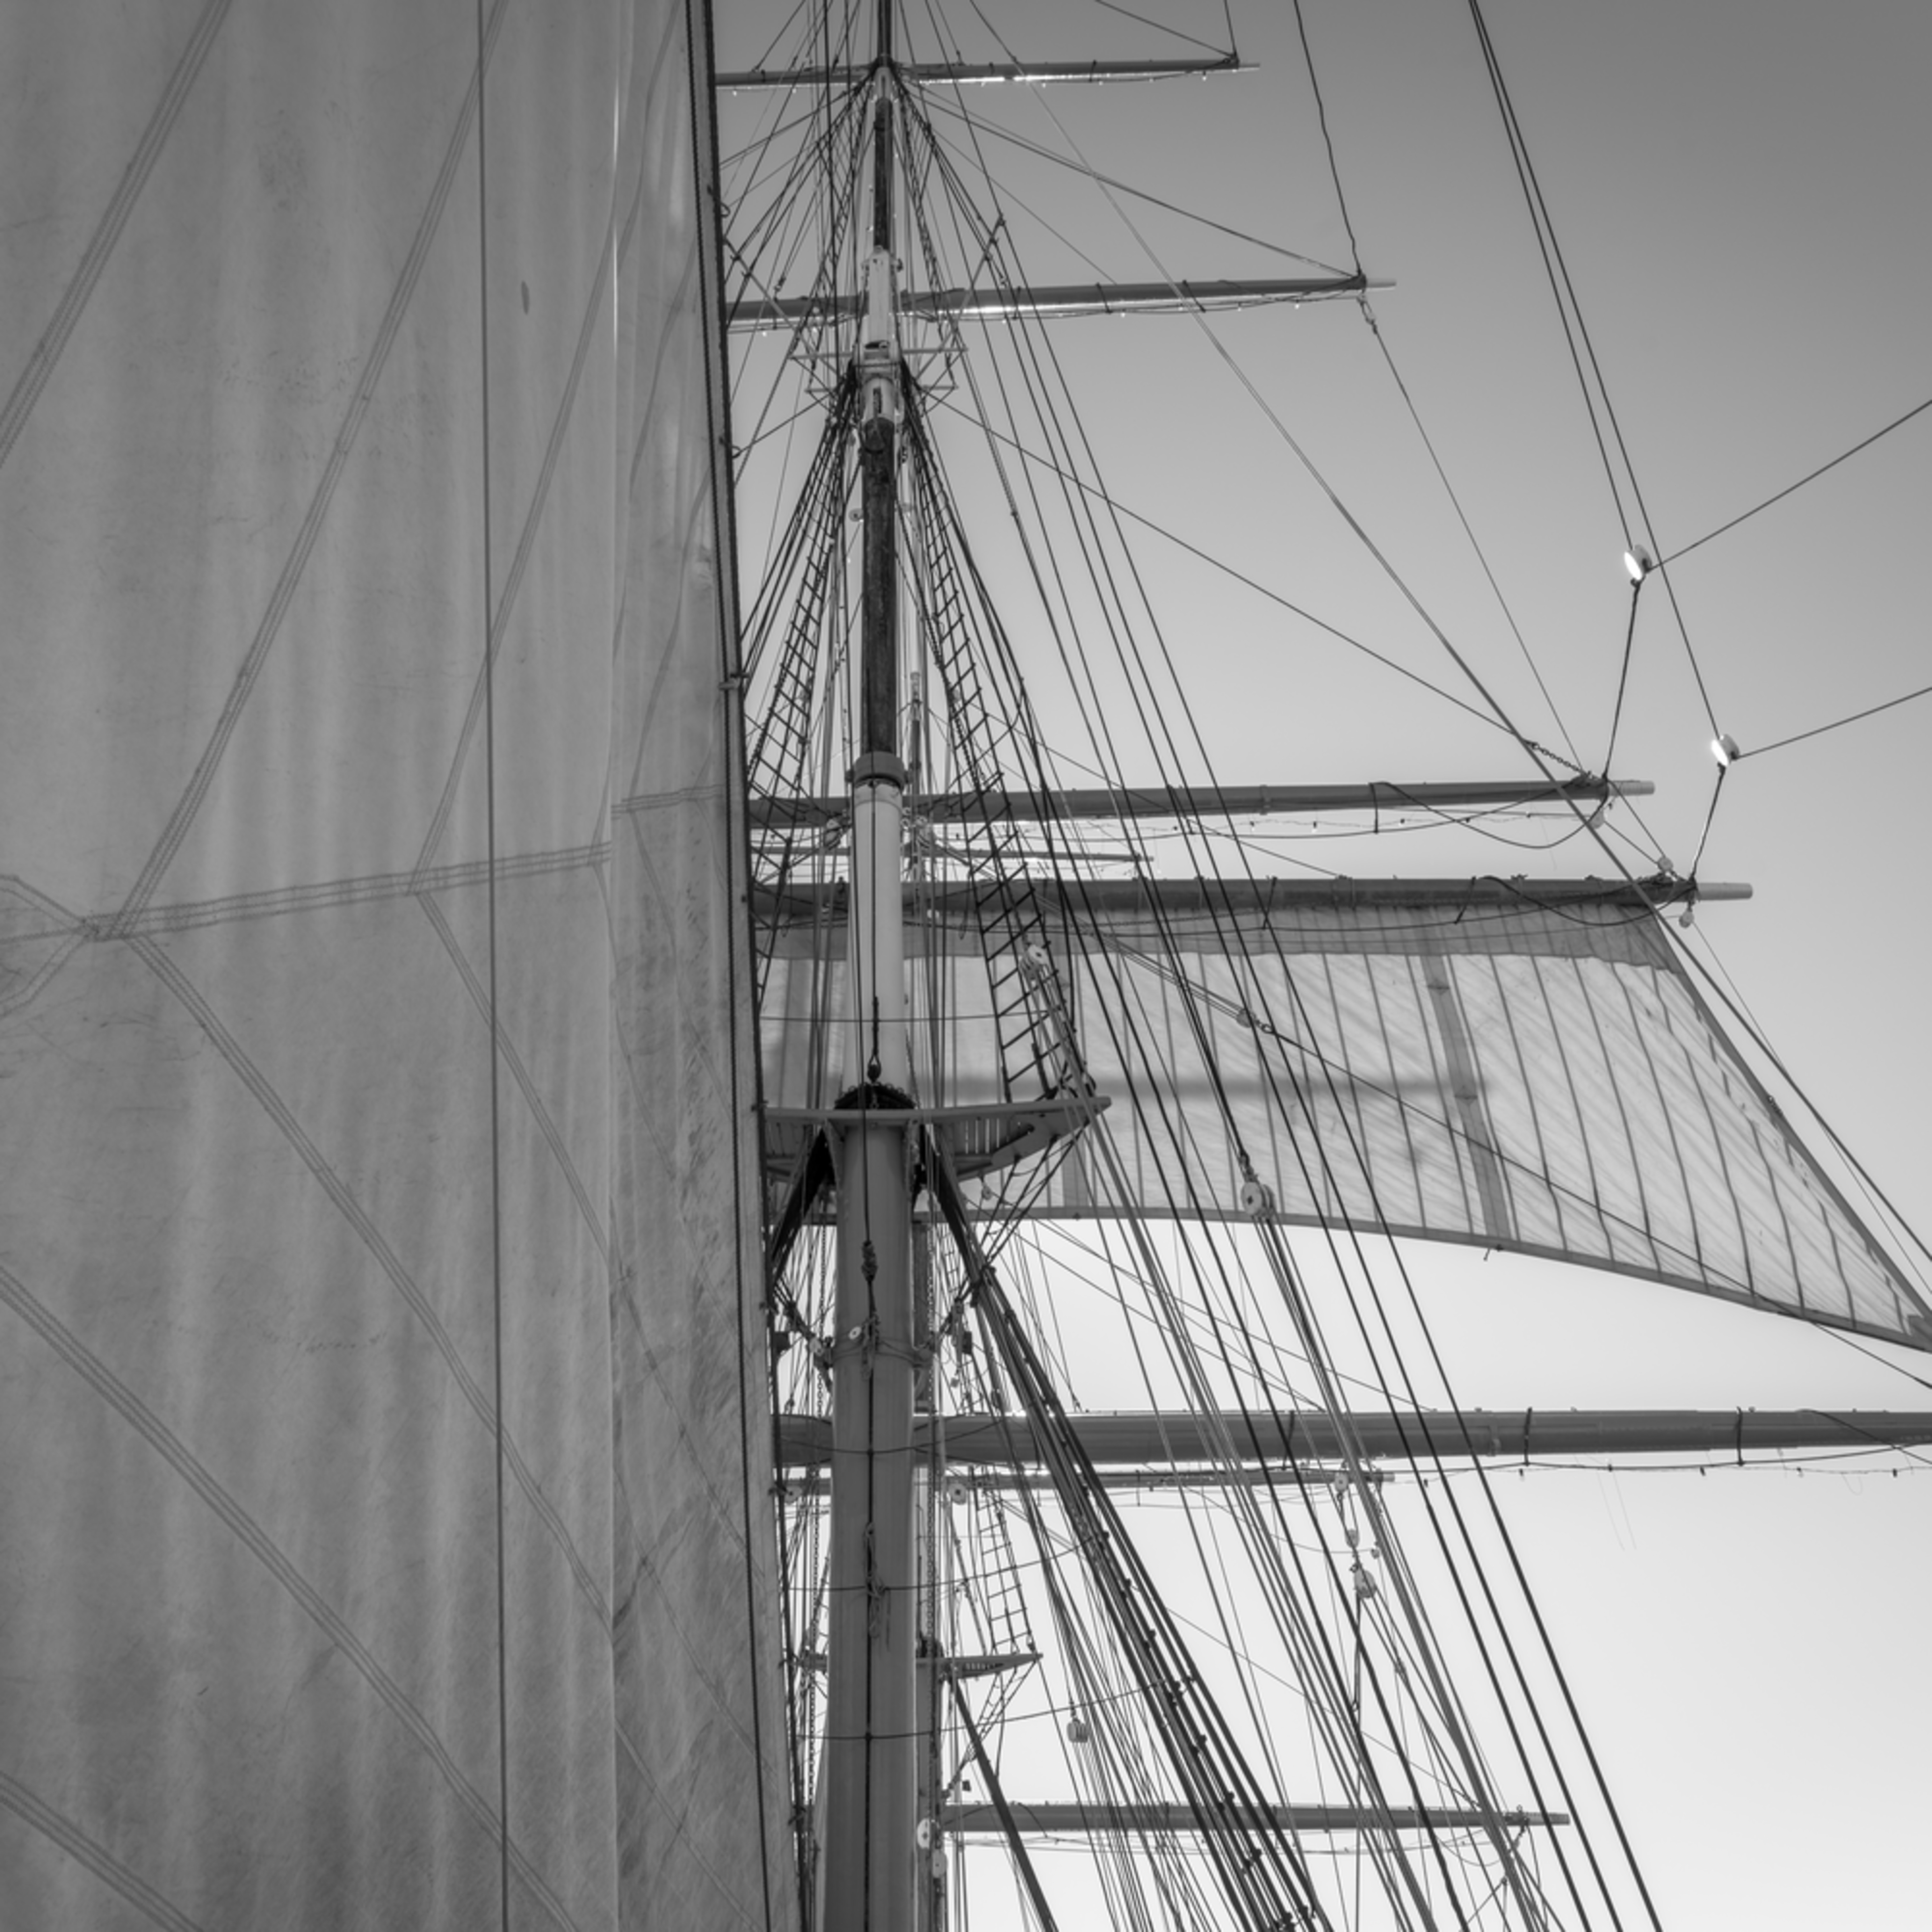 Staysail and main lower topsail   star of india onub87